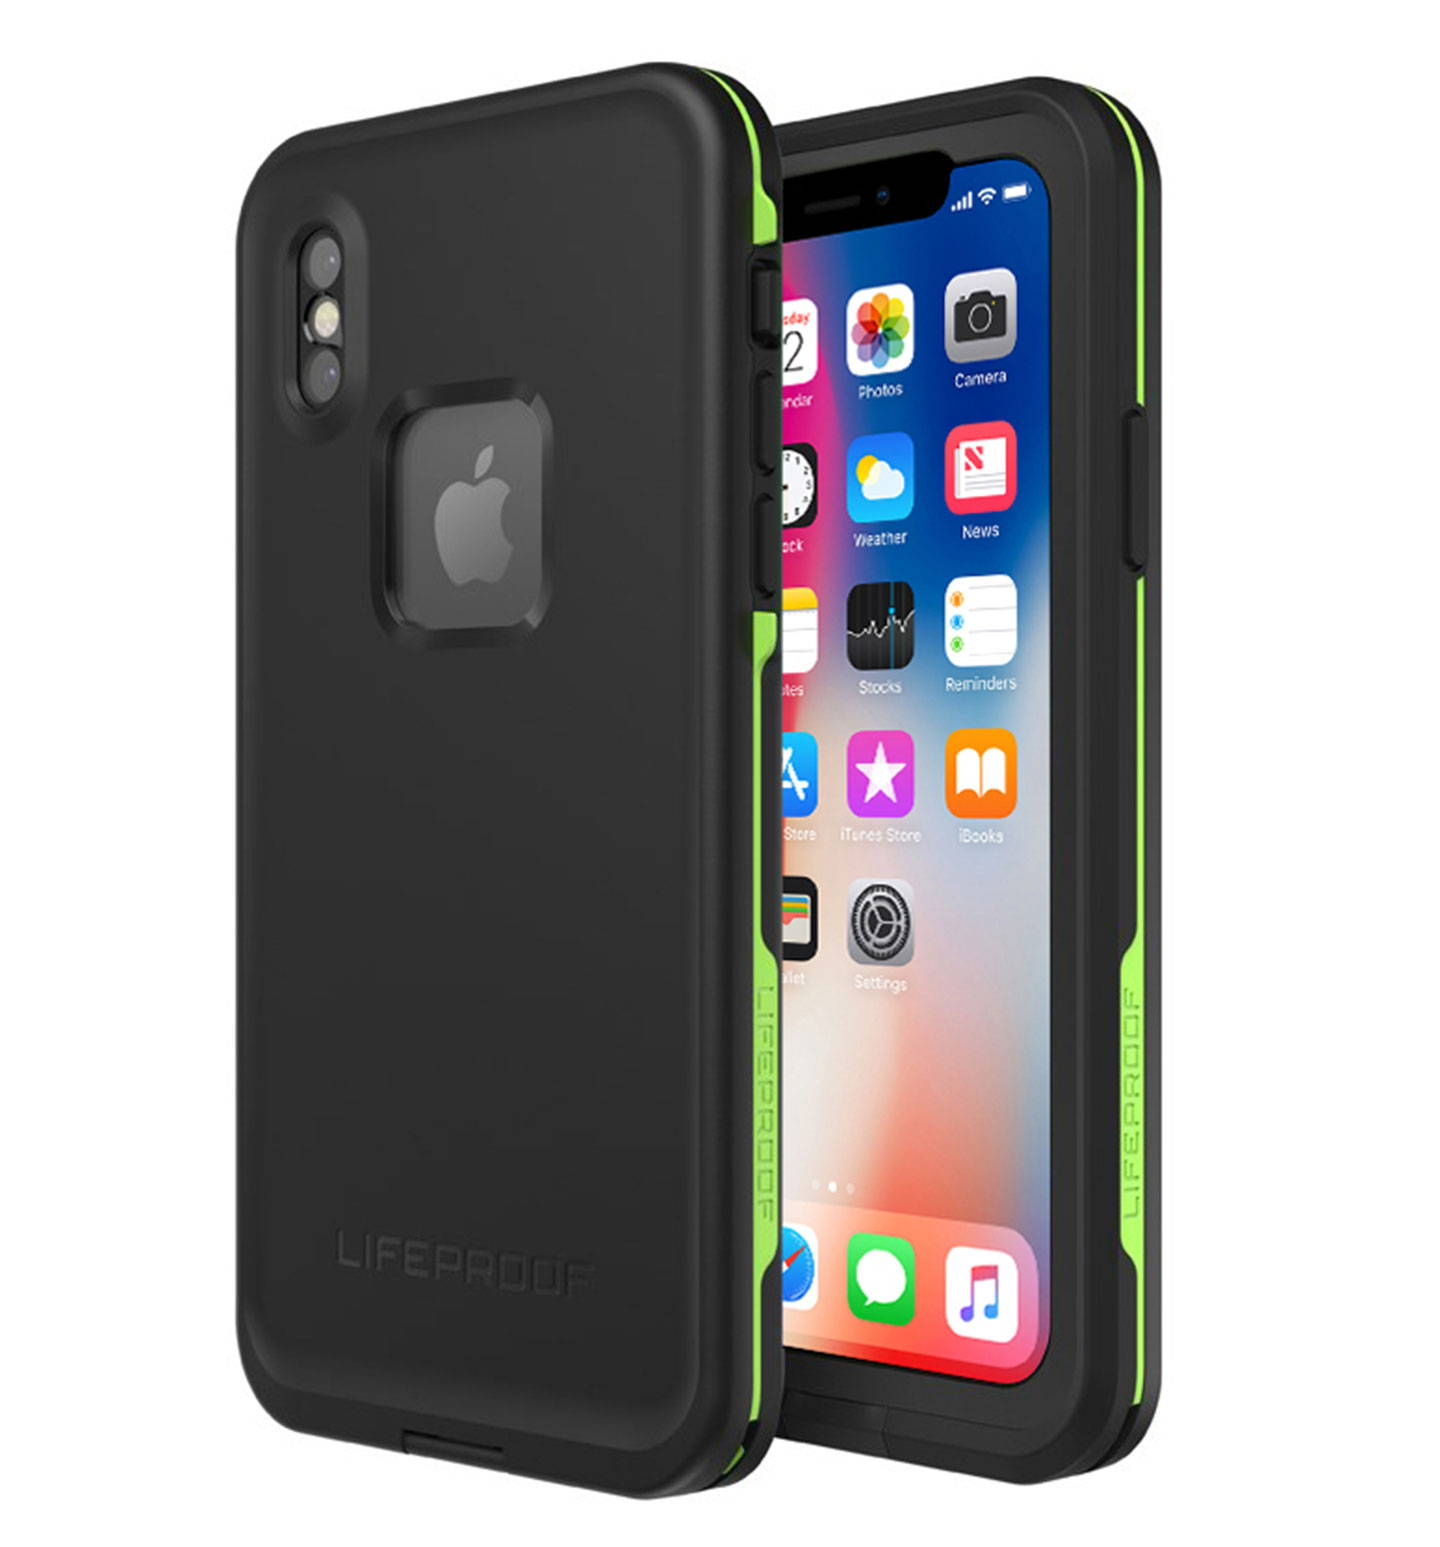 LifeProof FRE decorative skins for iPhone X/XS.  Custom LifeProof FRE covers for iPhone XS.  Unique LifeProof designs that protect and give your new iPhone XS the style it deserves.